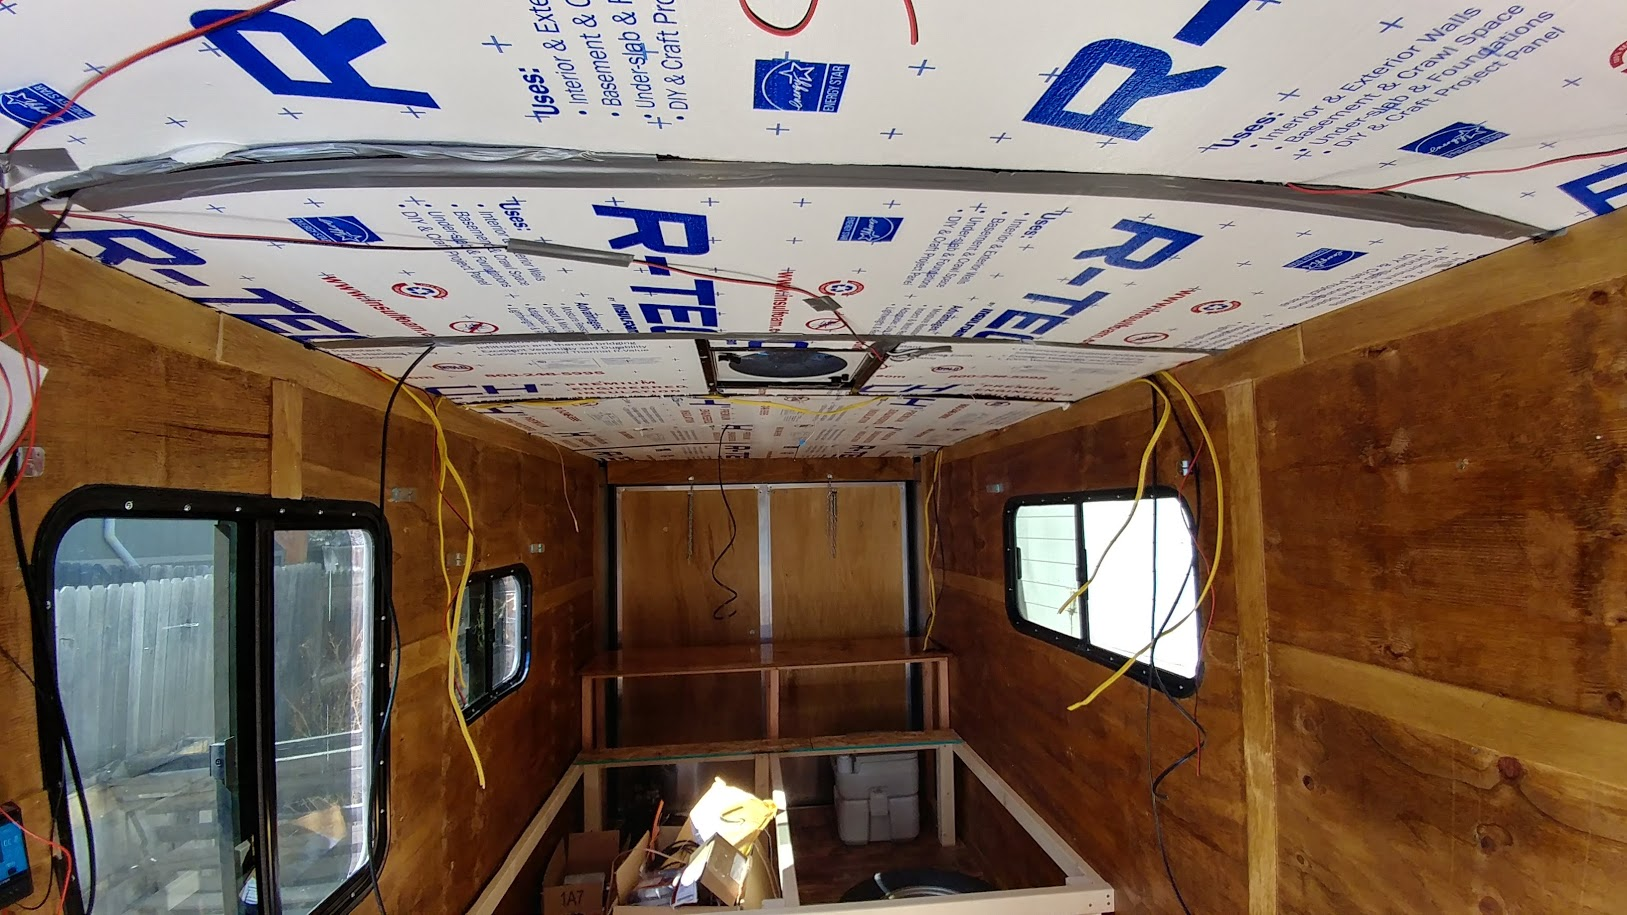 Encouraging Place It Hit Me About Summer Heat Reasons I Wanted A Trailer As Y Tendto Stay Wiring Roofmetal Getting One After I Got Everything Ceiling Foam Insulation Cargo Trailer Camper Conversion curbed Cargo Trailer Camper Conversion